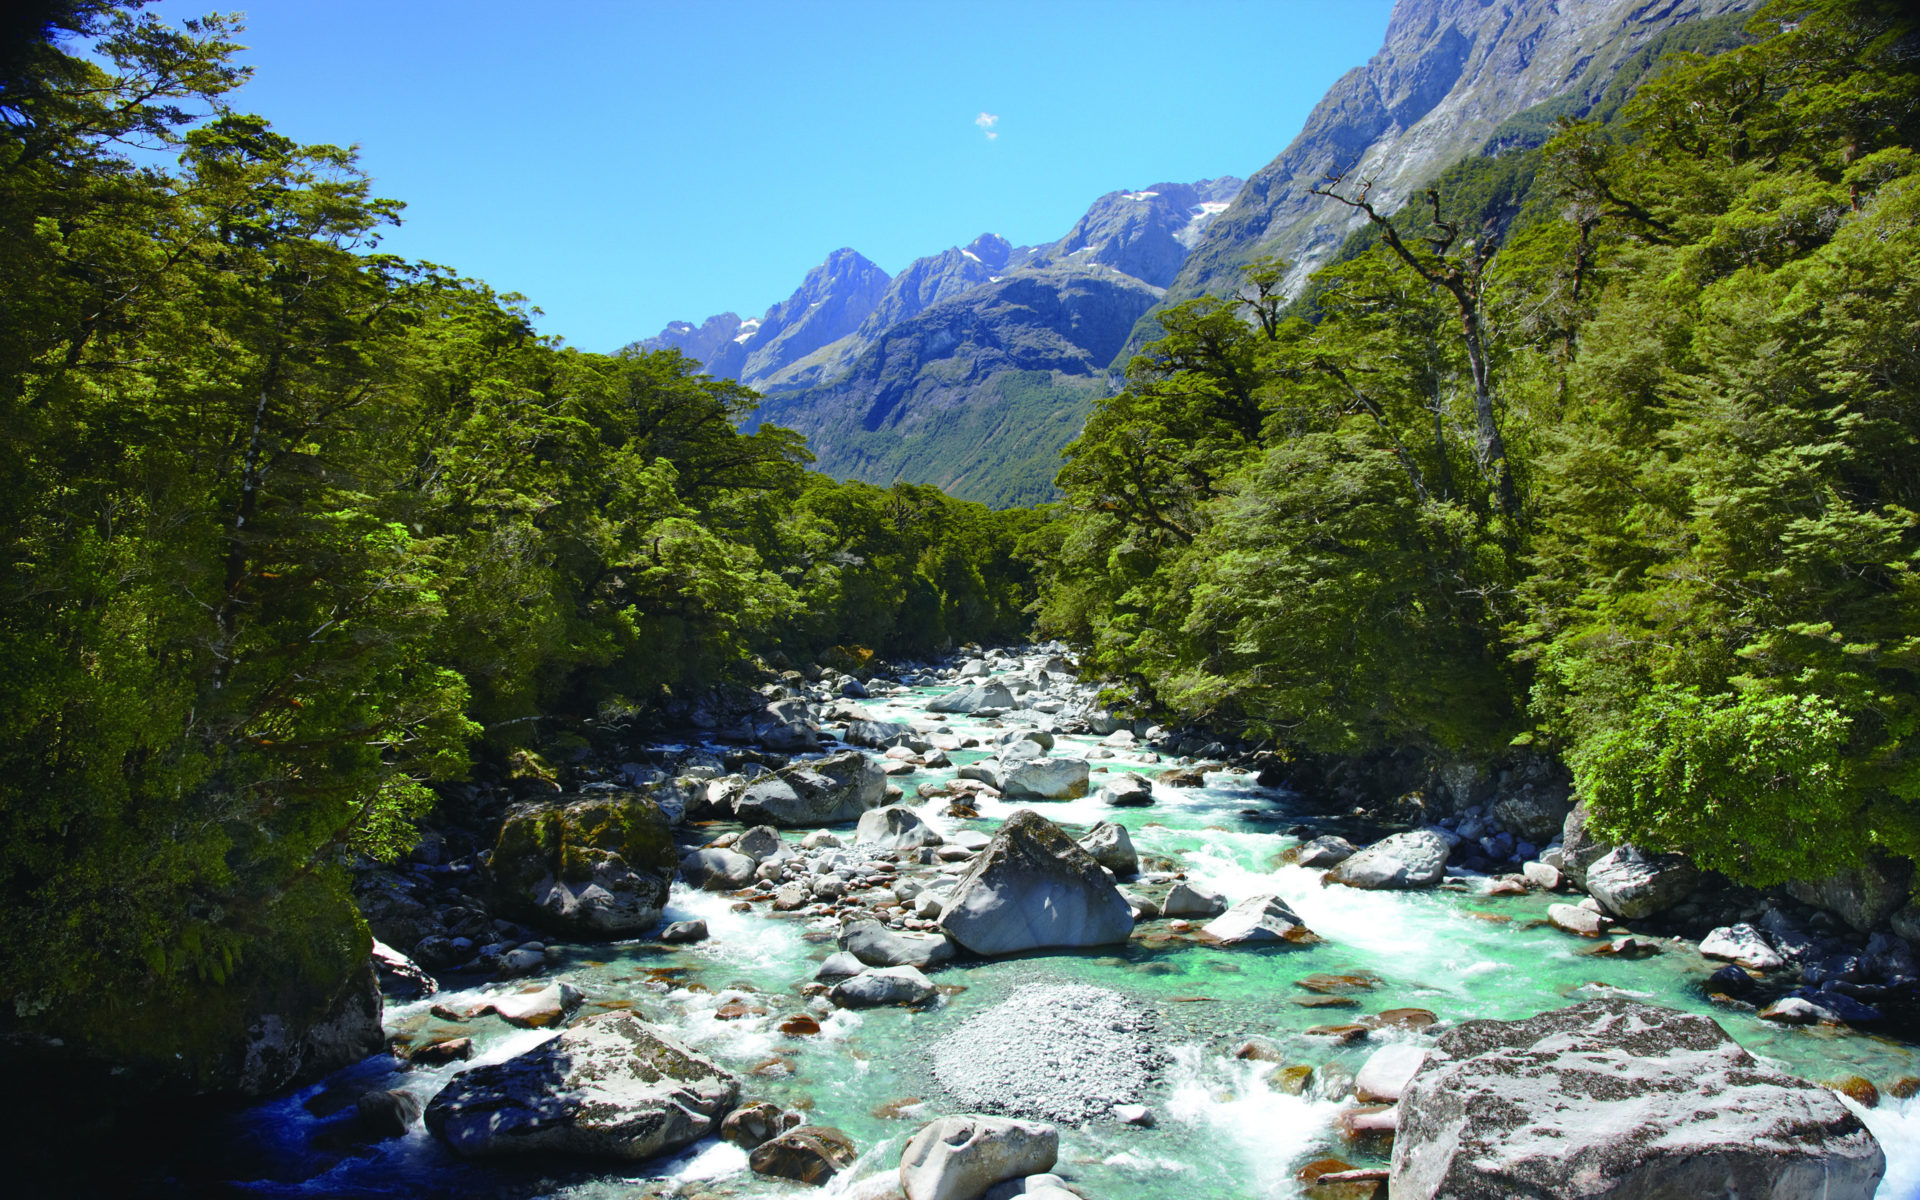 Fall Autumn Hd Wallpaper 1920x1080 Hollyford River Upper Tech New Zealand Wallpapers13 Com